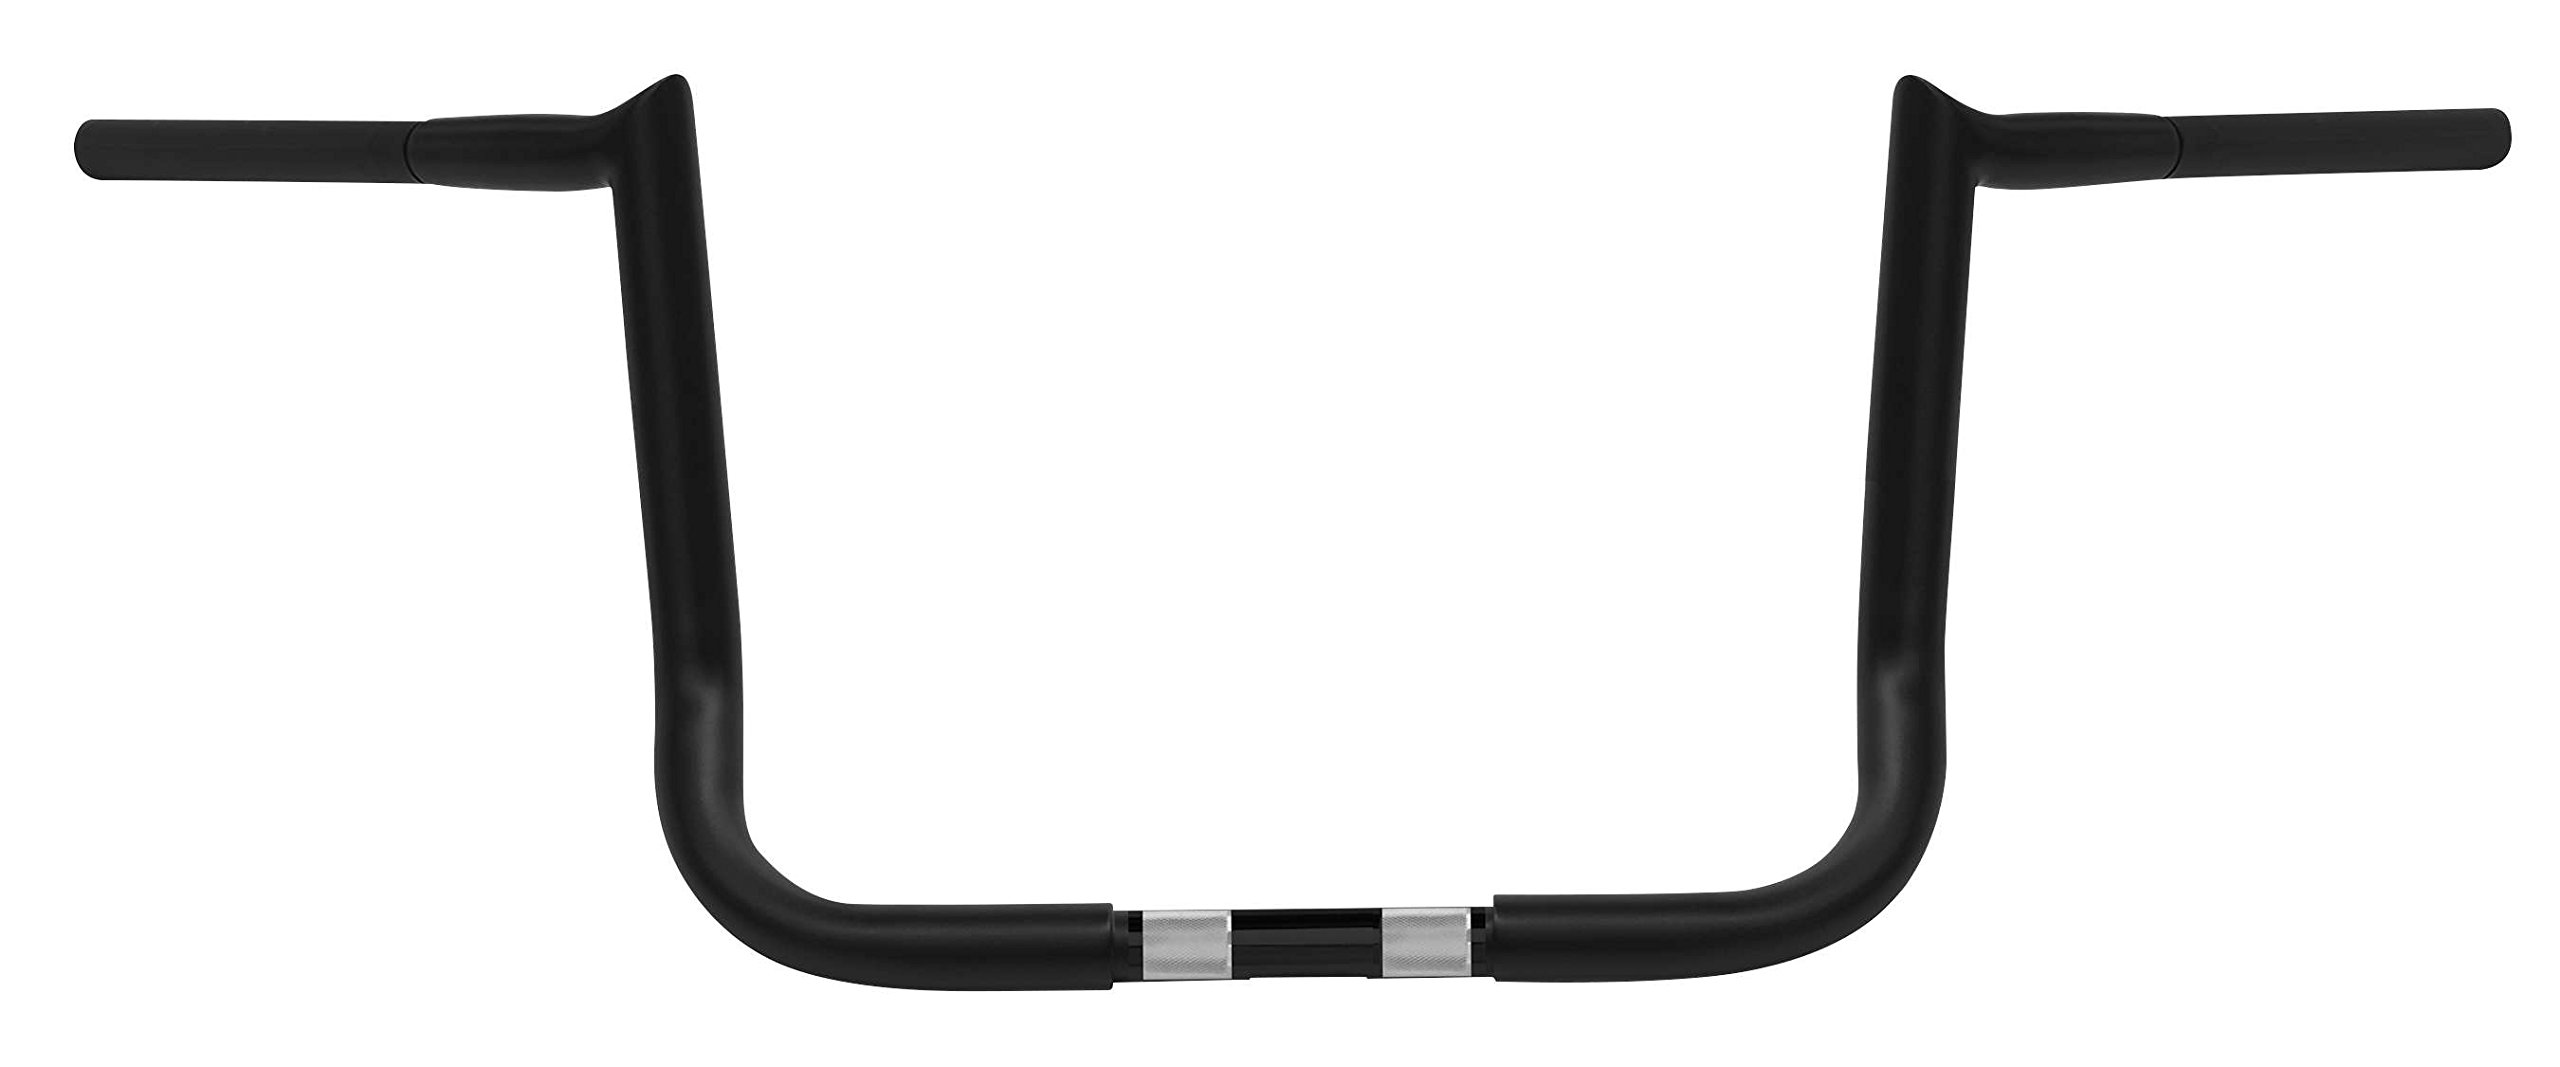 Wild 1 WO592B Chubbys Reaper Handlebars for Baggers - 12in. - Black, Handle Bar Size: Not Available, Color: Black